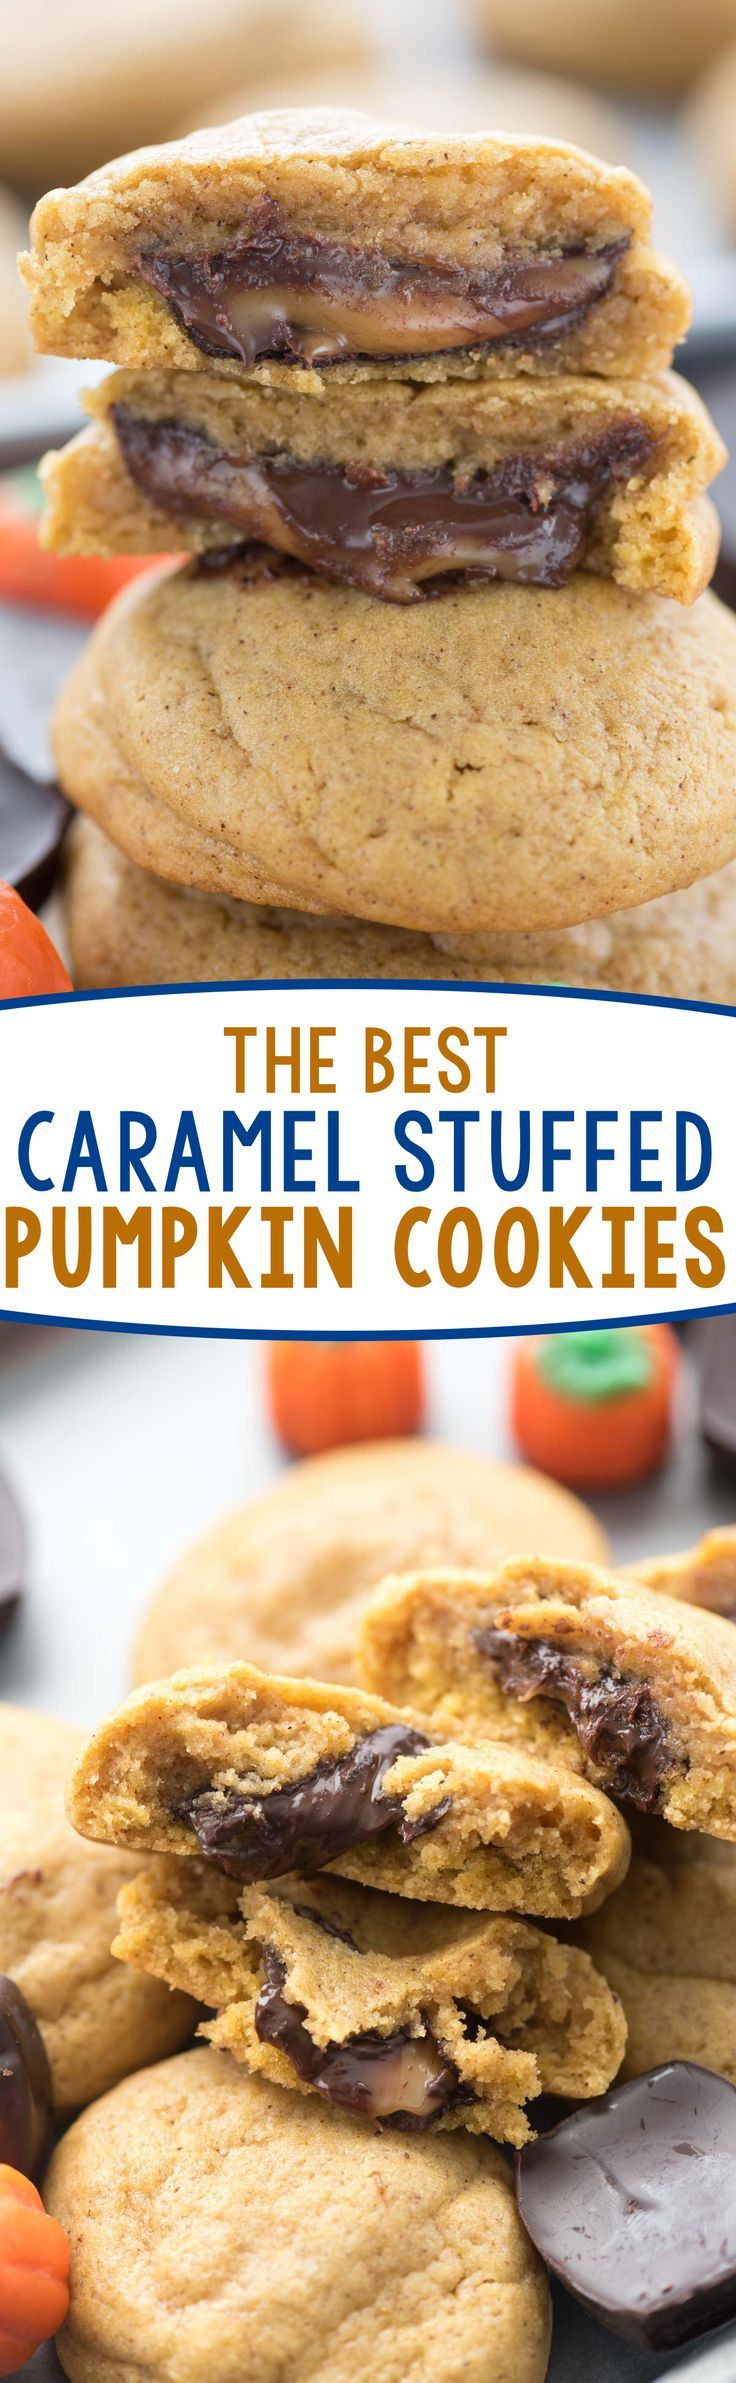 Check out Caramel Stuffed Pumpkin Cookies. It's so easy to ...